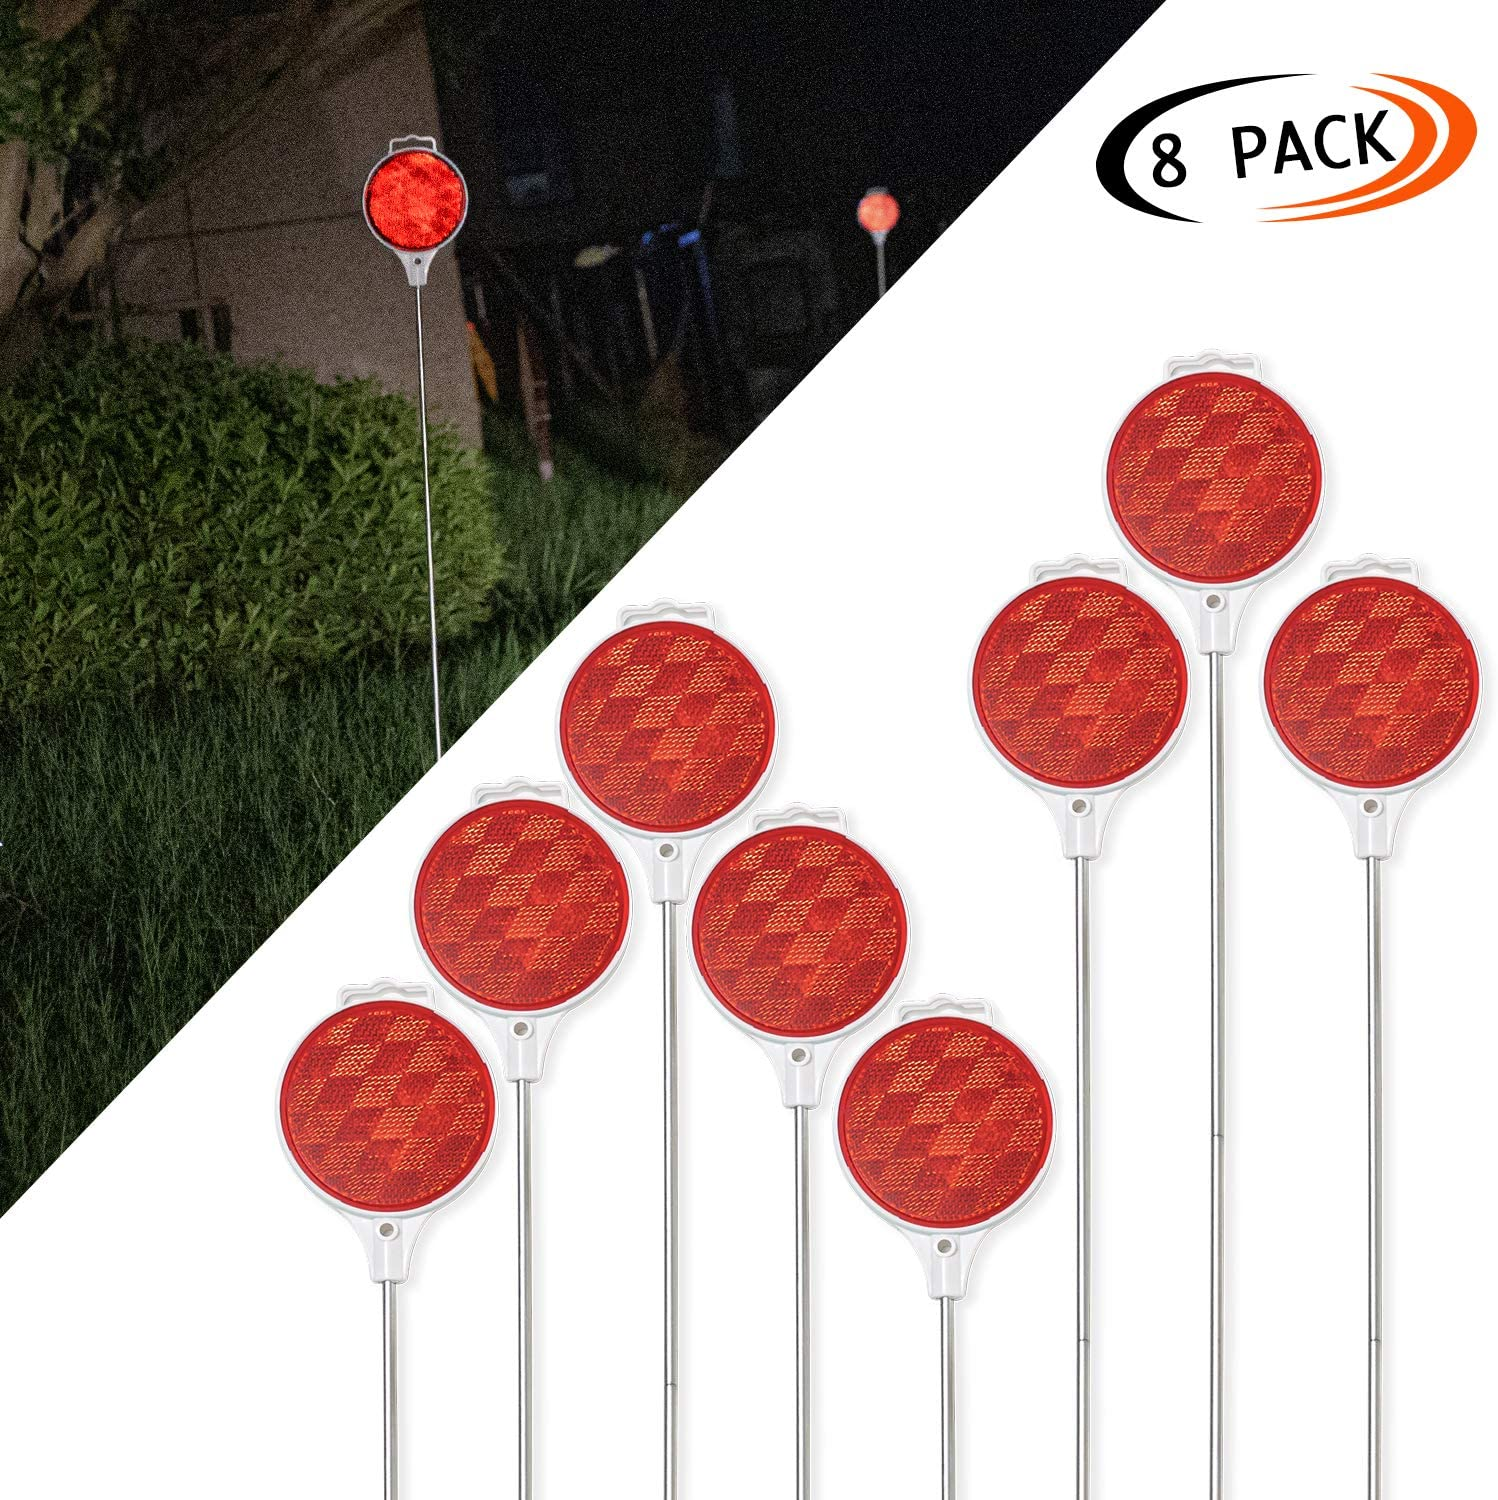 CZC AUTO Red Reflective Driveway Markers 37.5-inch Double Sided Metal Post Driveway Reflectors for Easy Visibility at Night or Any Weather 8 Pack